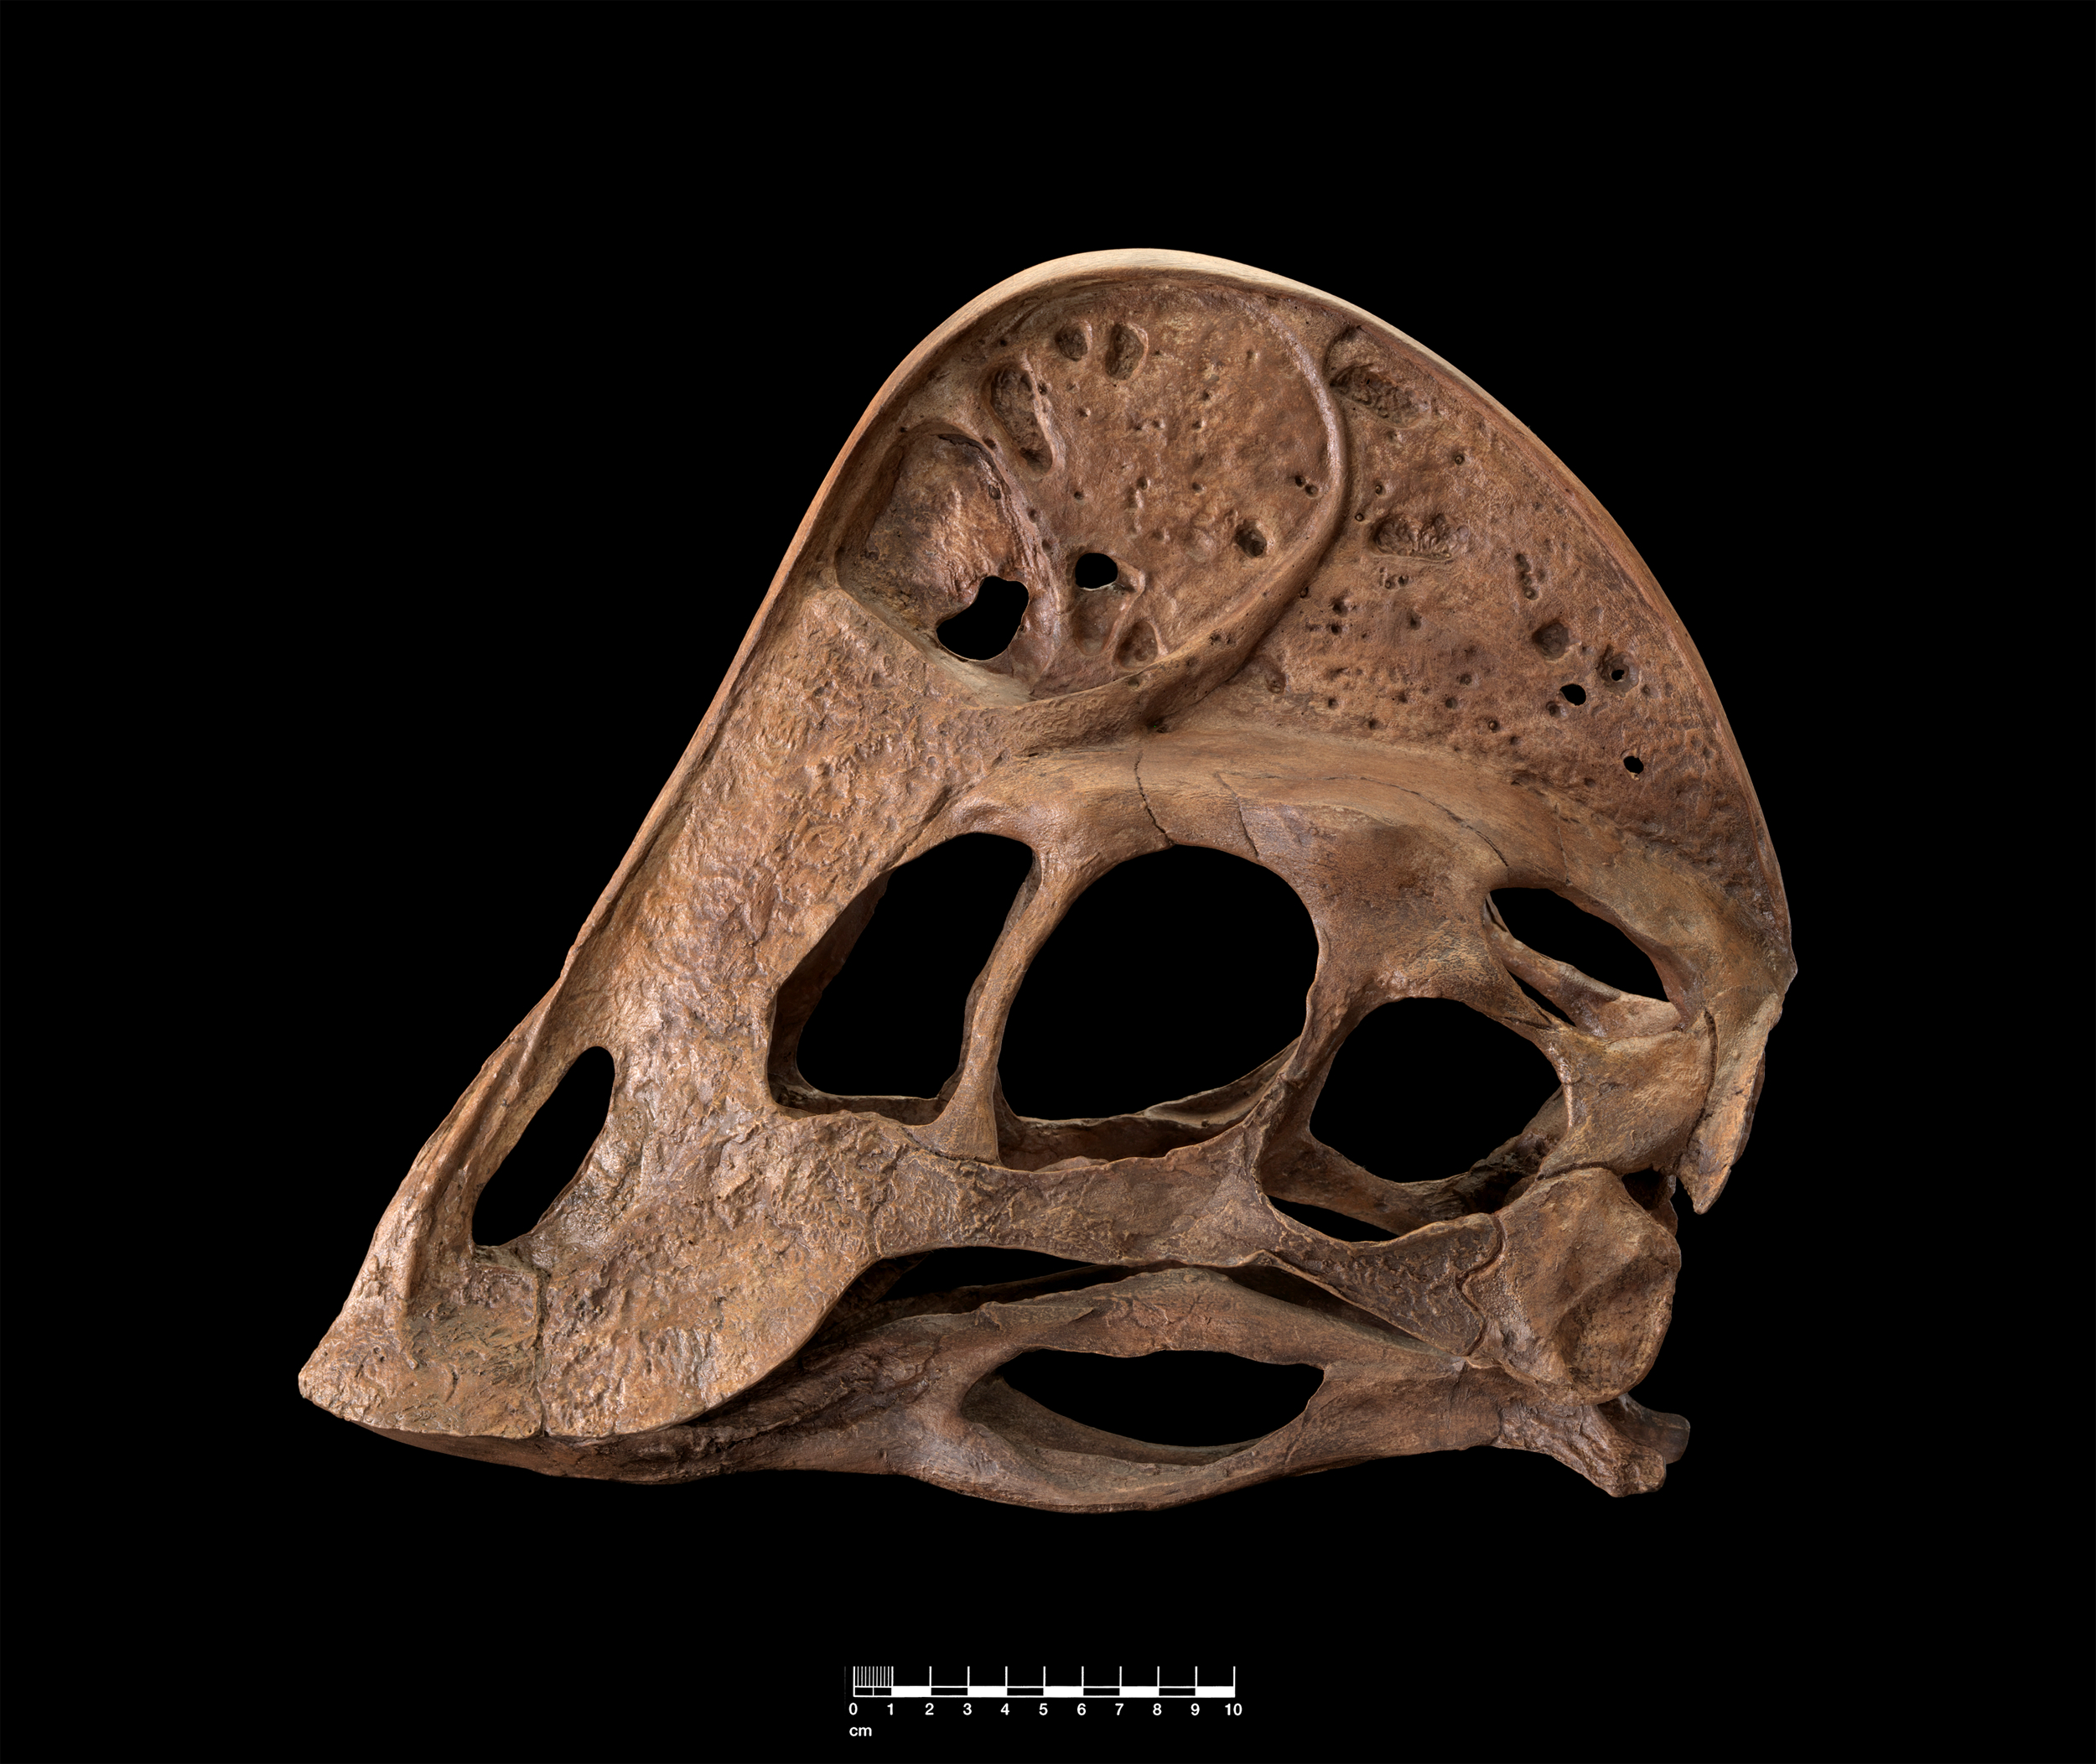 The reconstructed skull of Anzu wyliei shows its large toothless beak that suggests it may have been an omnivore. Image courtesy of James Di Loreto, Smithsonian Institution.